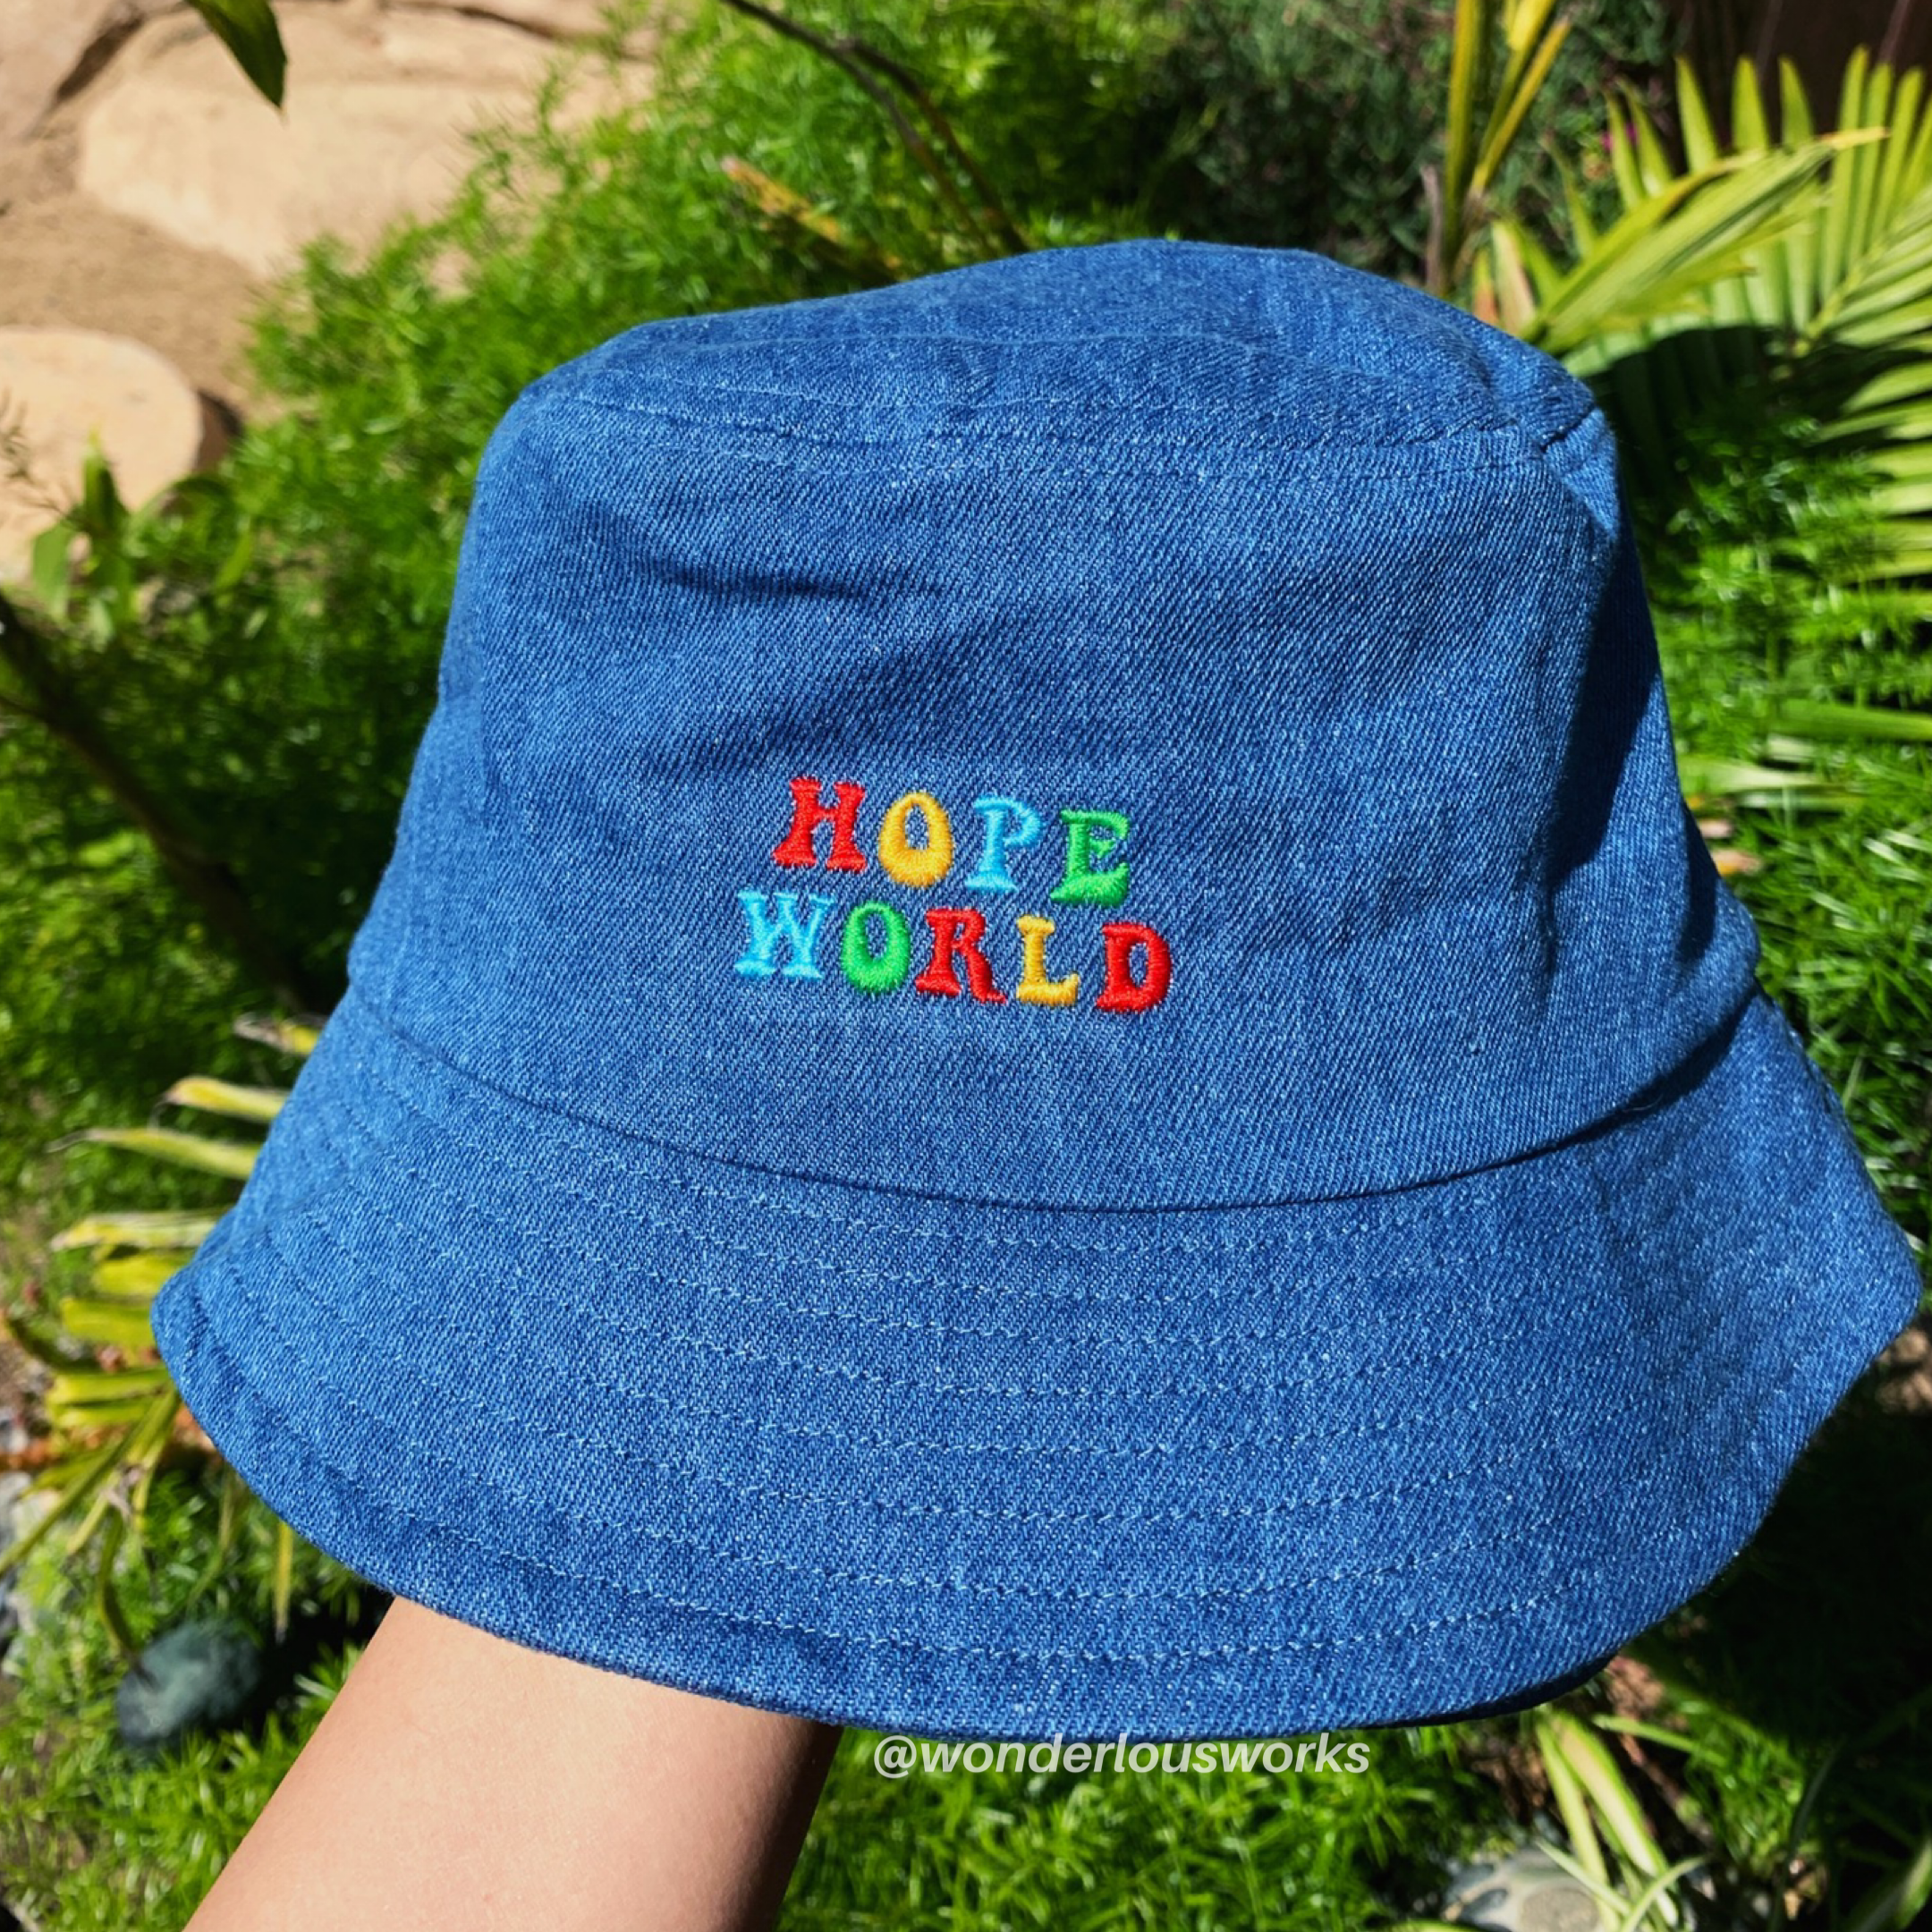 J Hope Hope World Bucket Hat In 2020 Hat Fashion Bts Inspired Outfits Fashion Inspo Outfits